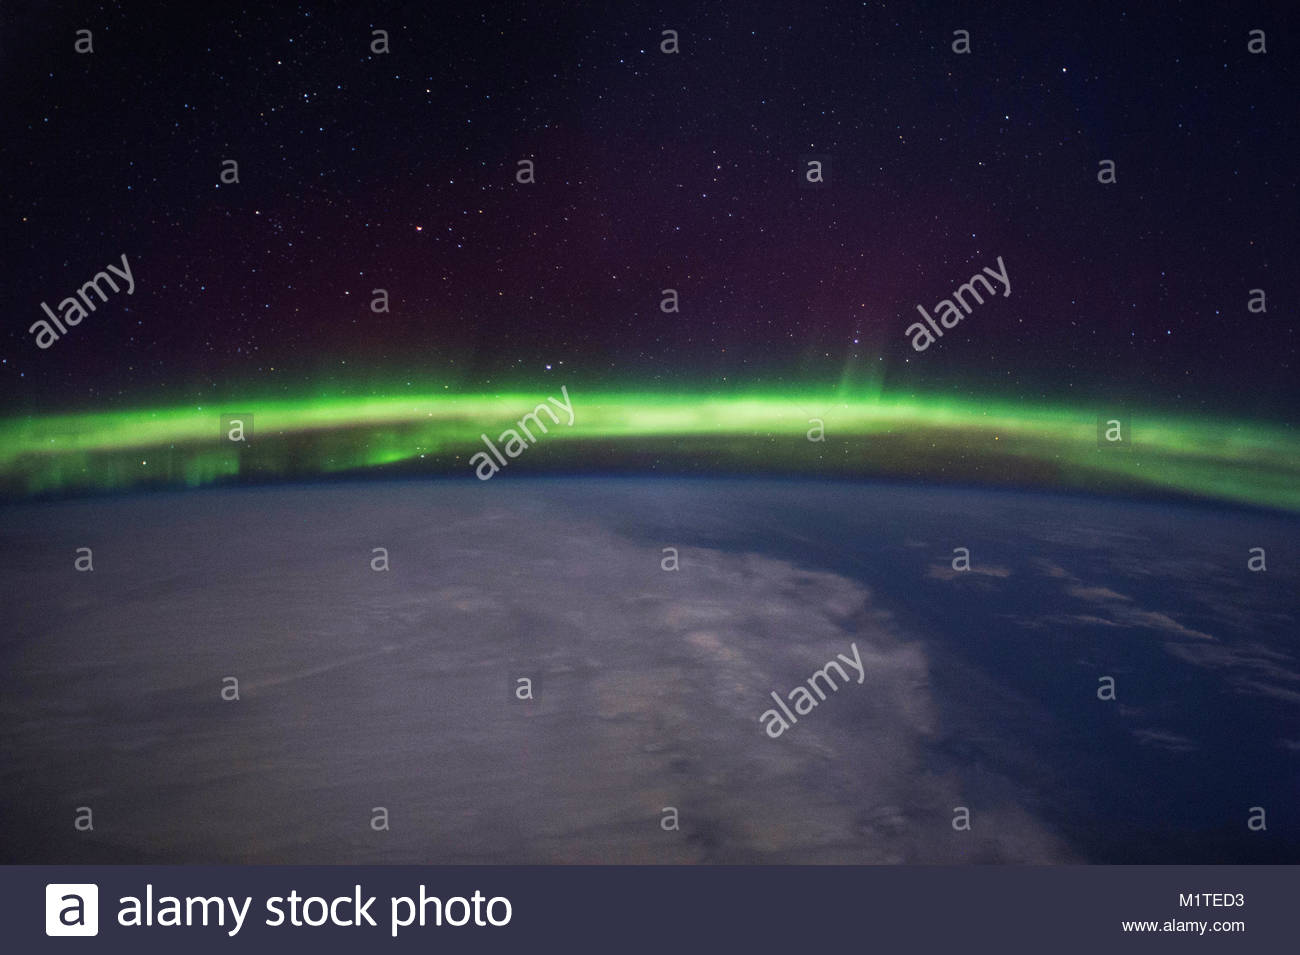 Space. - Stock Image